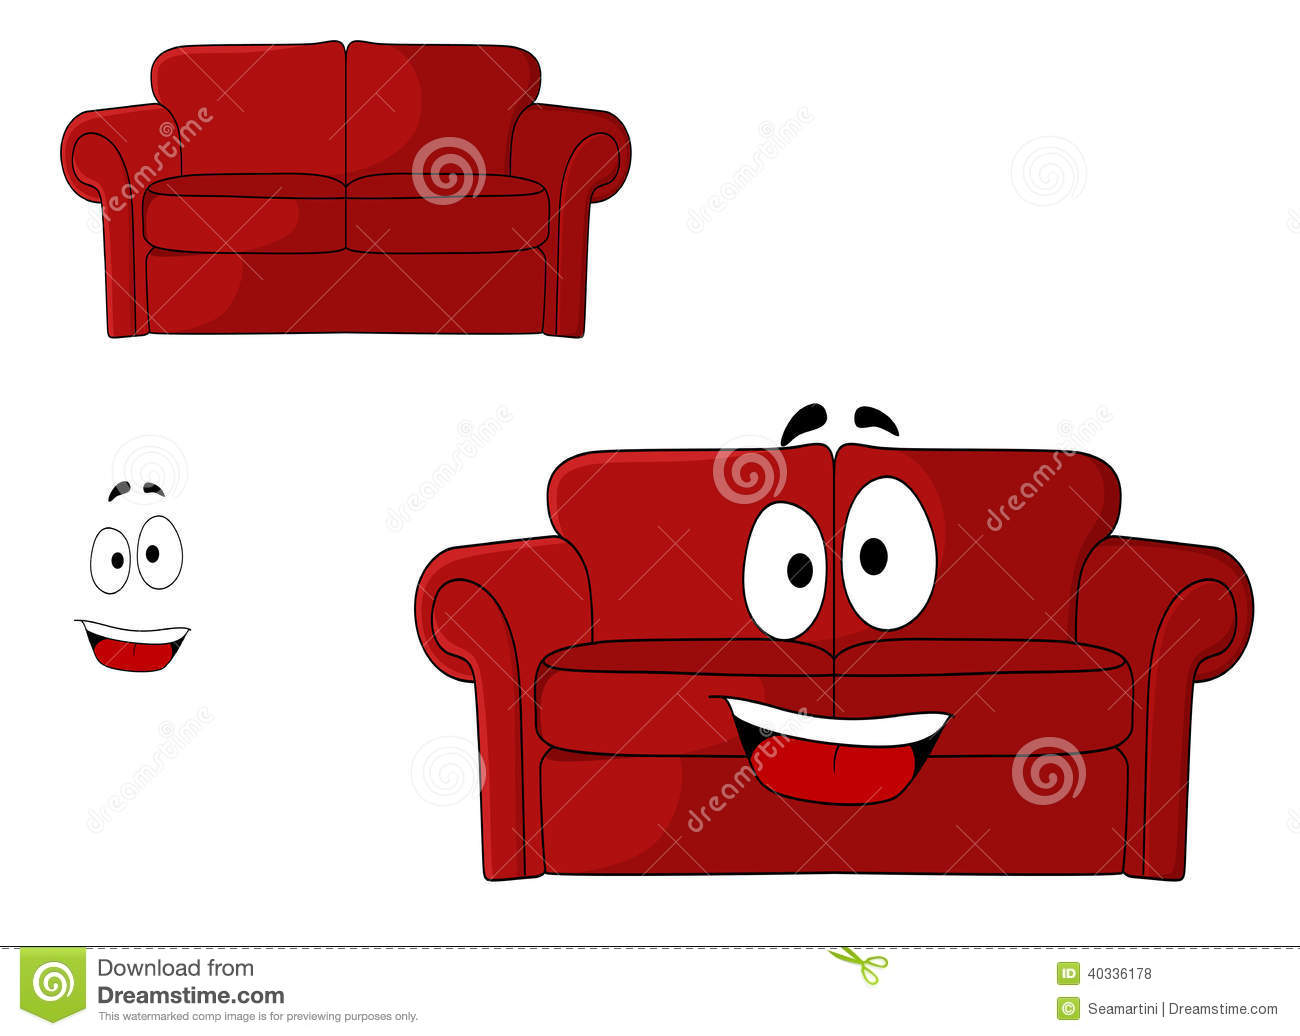 Fun Cartoon Upholstered Red Couch Stock Vector Image